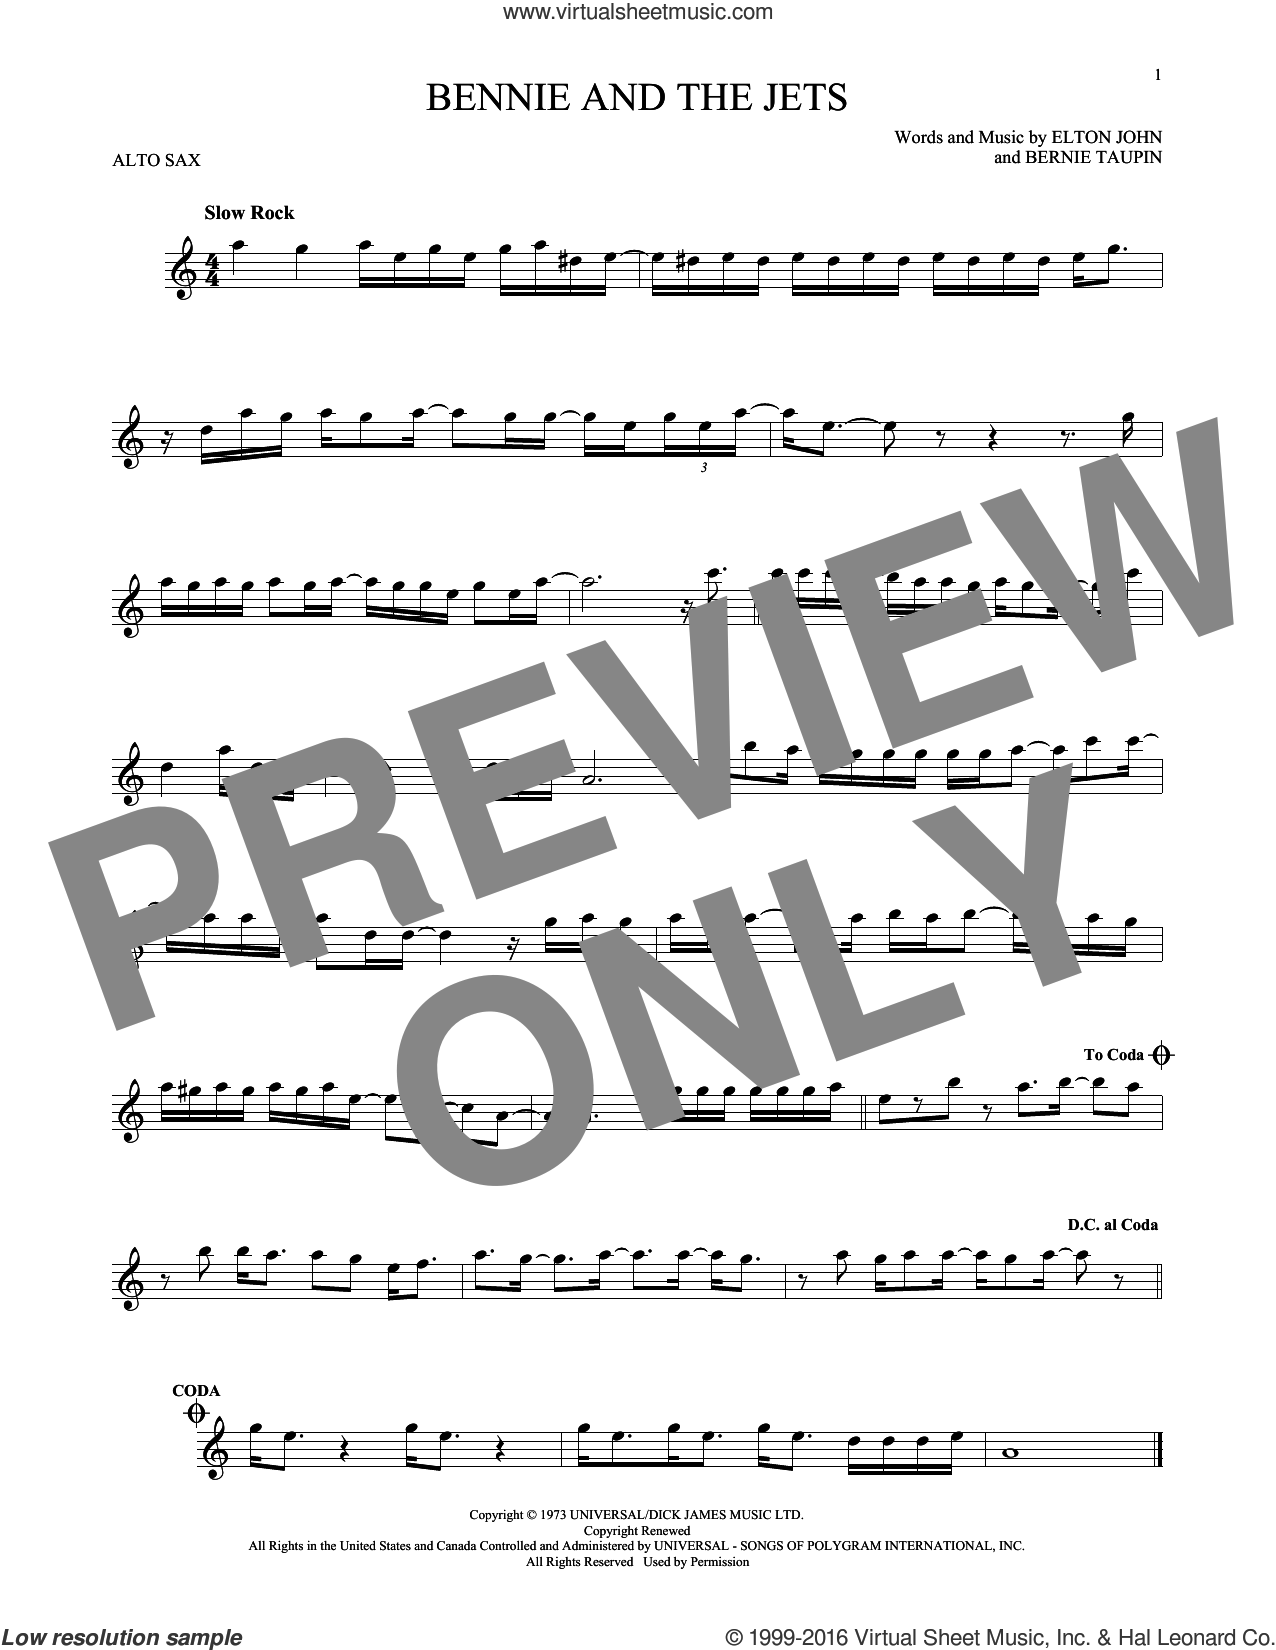 Bennie And The Jets sheet music for alto saxophone solo by Bernie Taupin and Elton John. Score Image Preview.